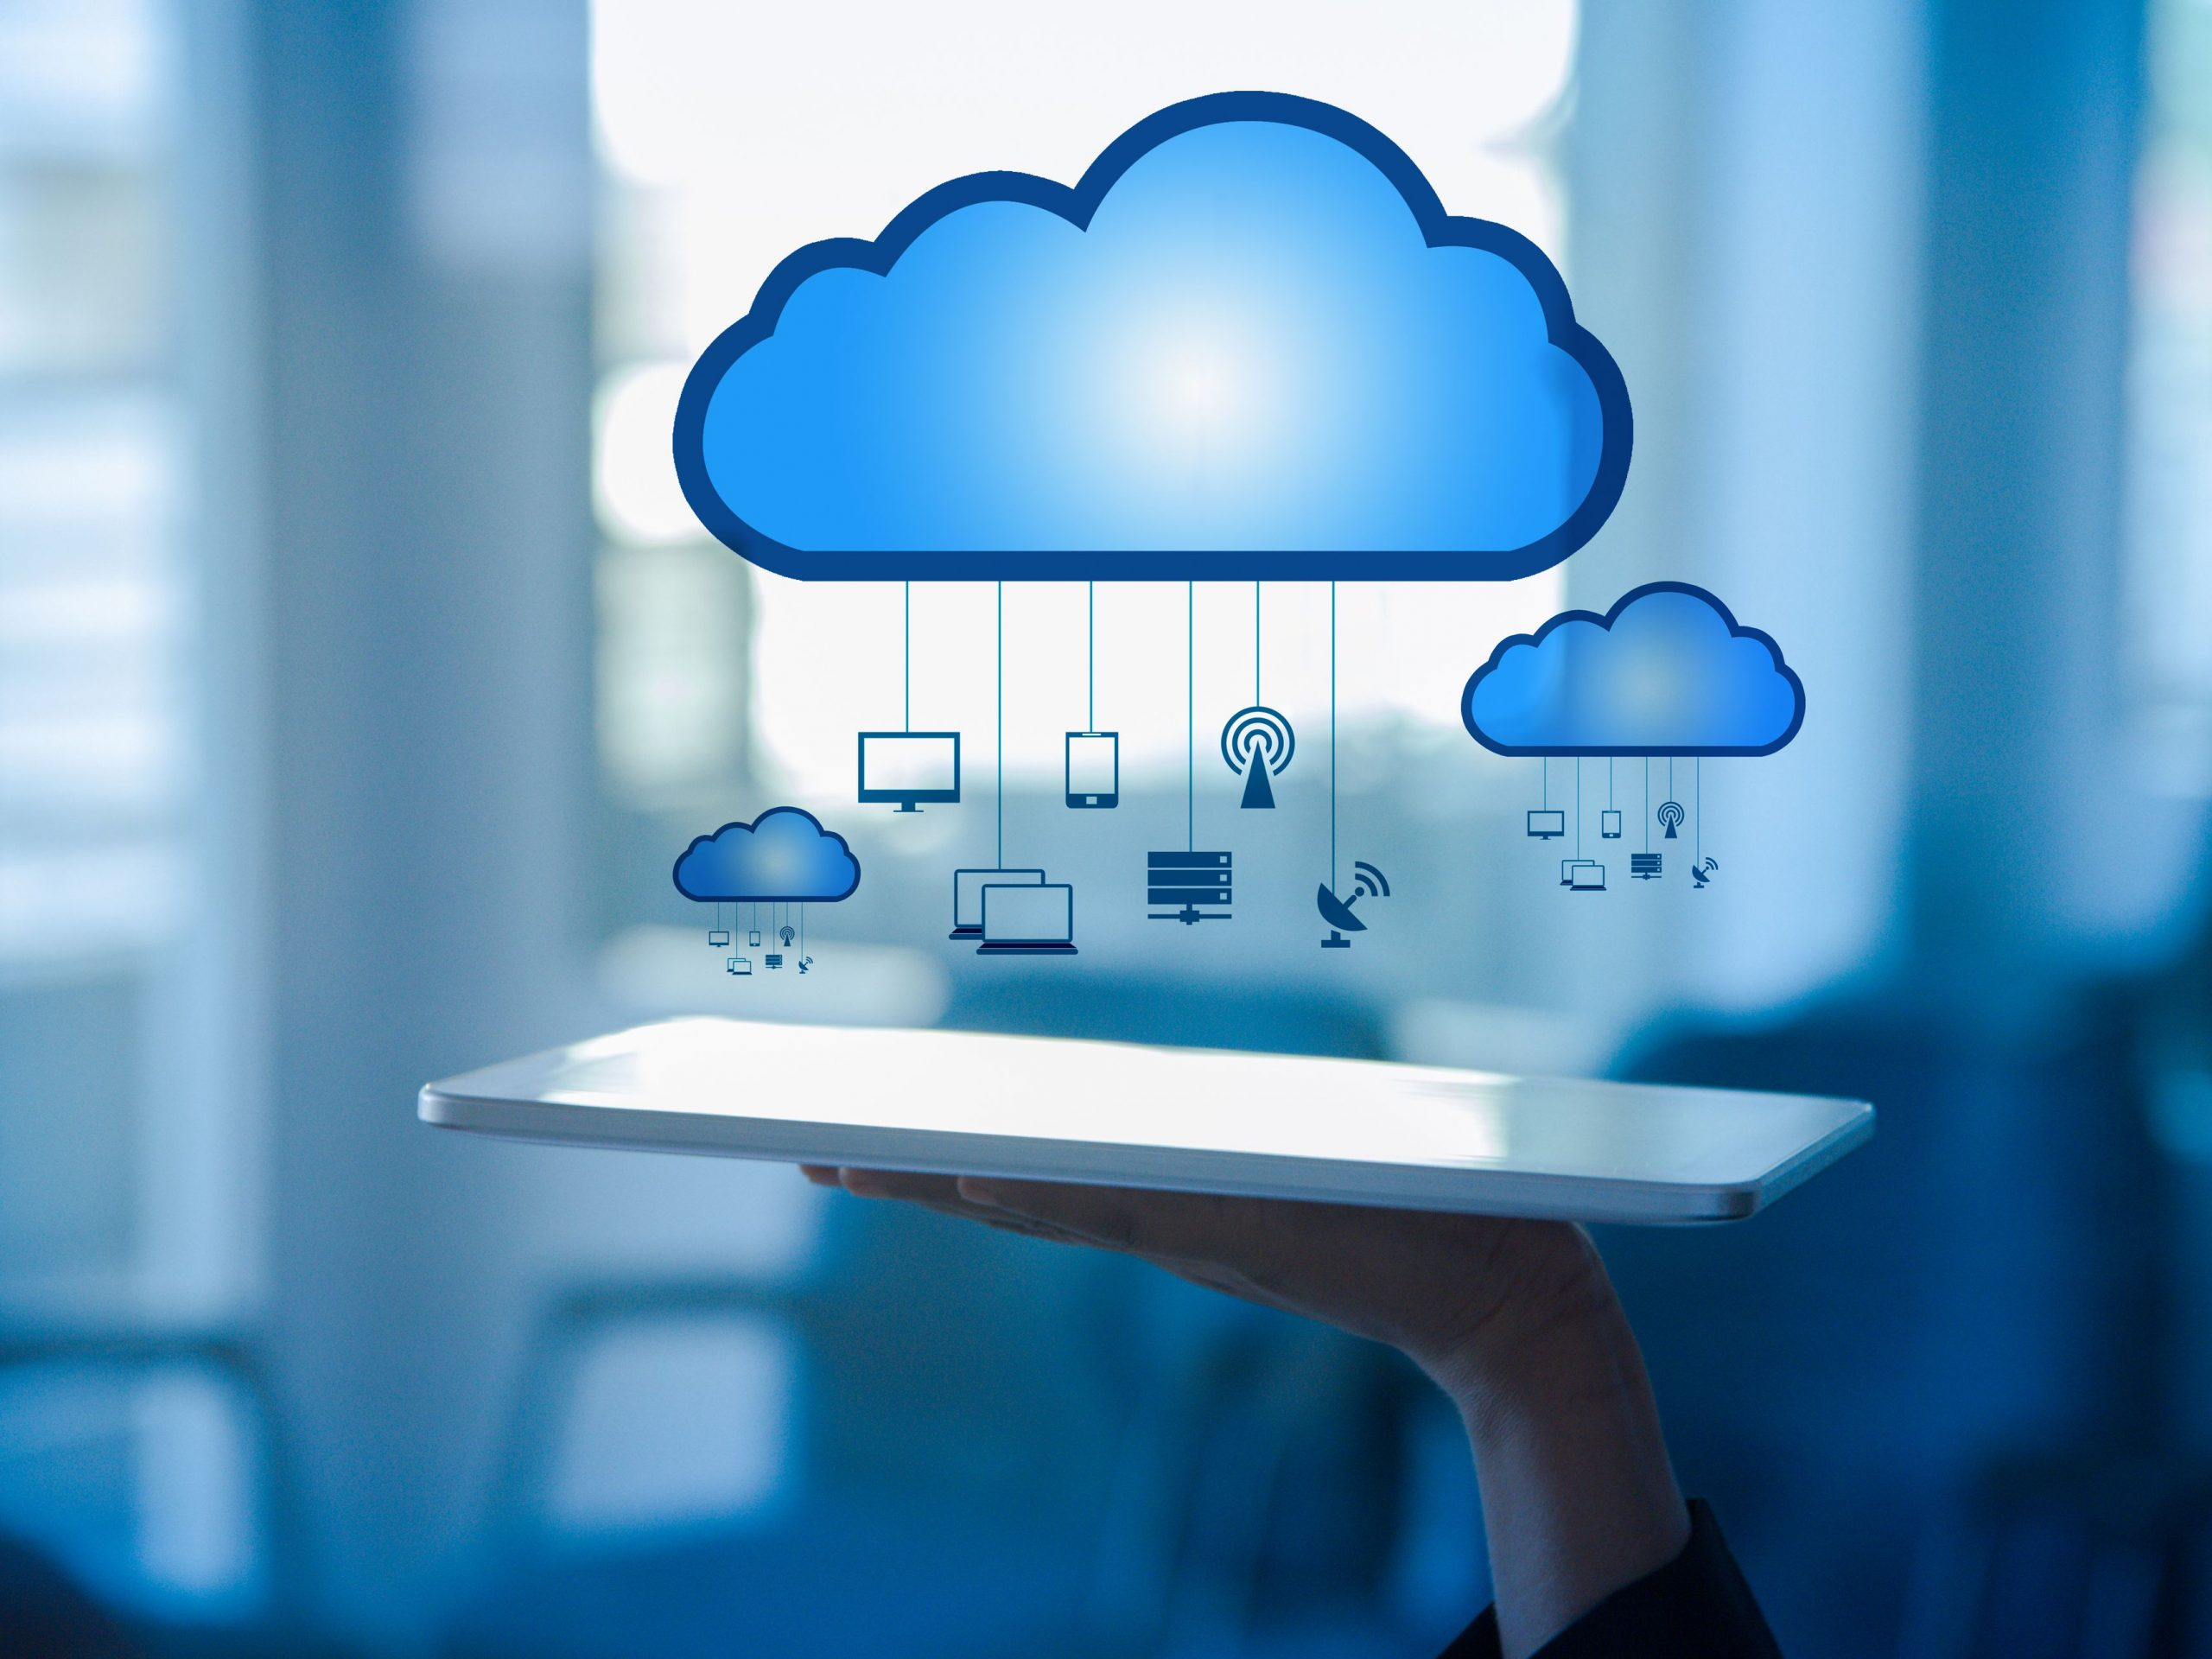 teck-genius-cloud-computing-for-small-businesses-1